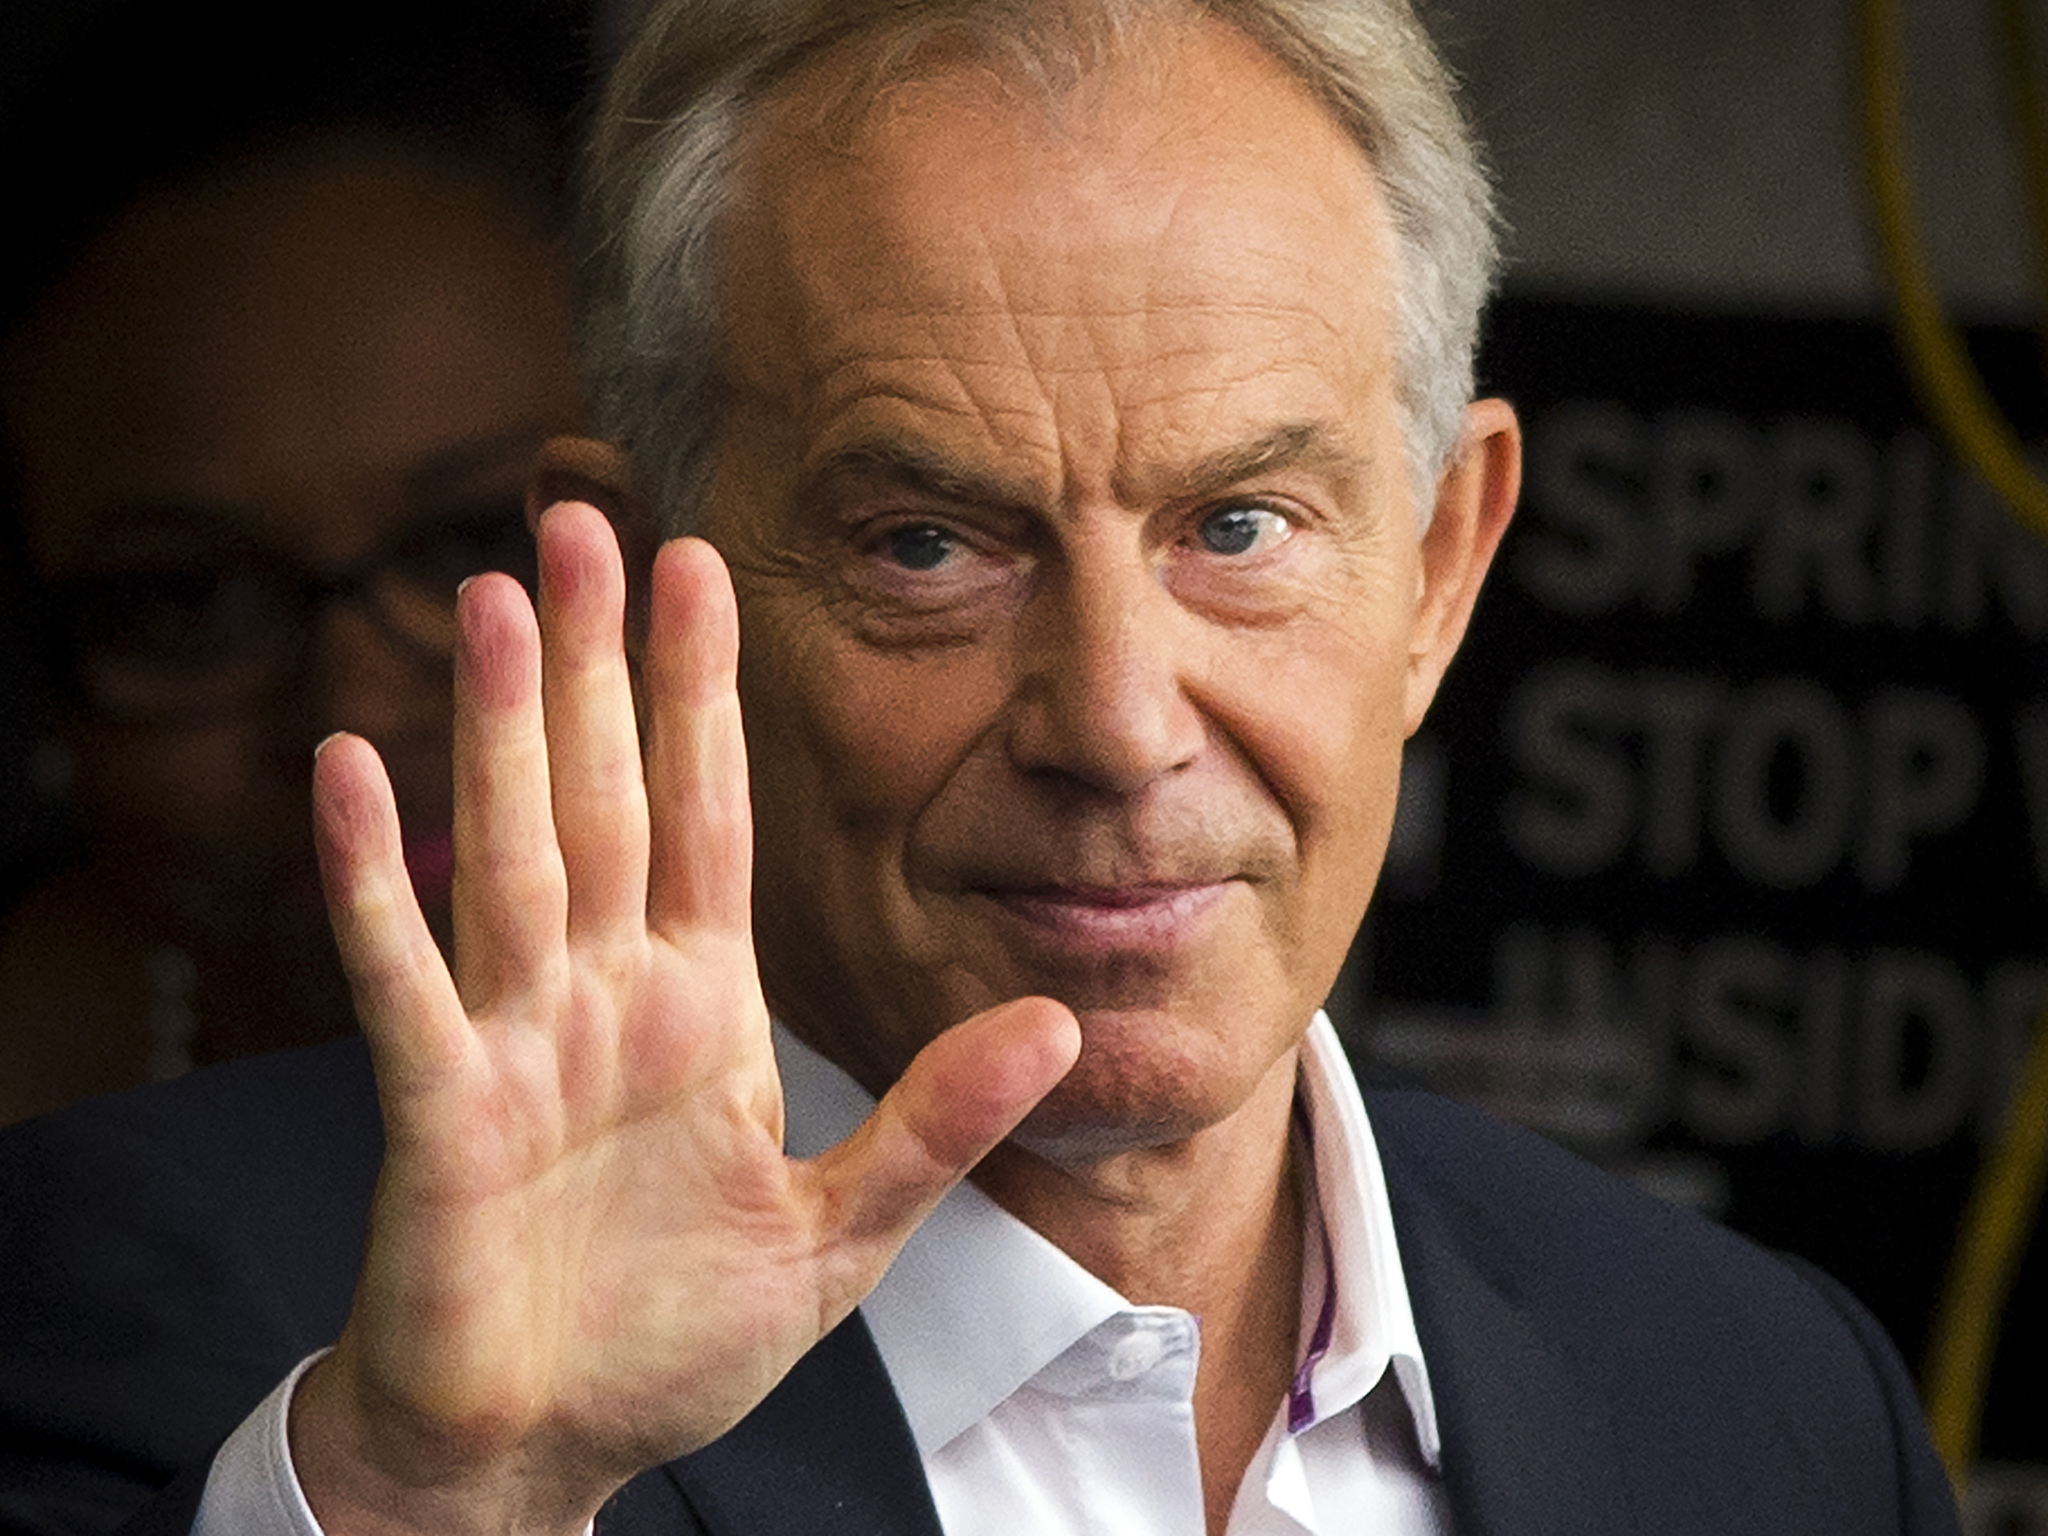 Blair Warned in 2000 Iraq War was Illegal